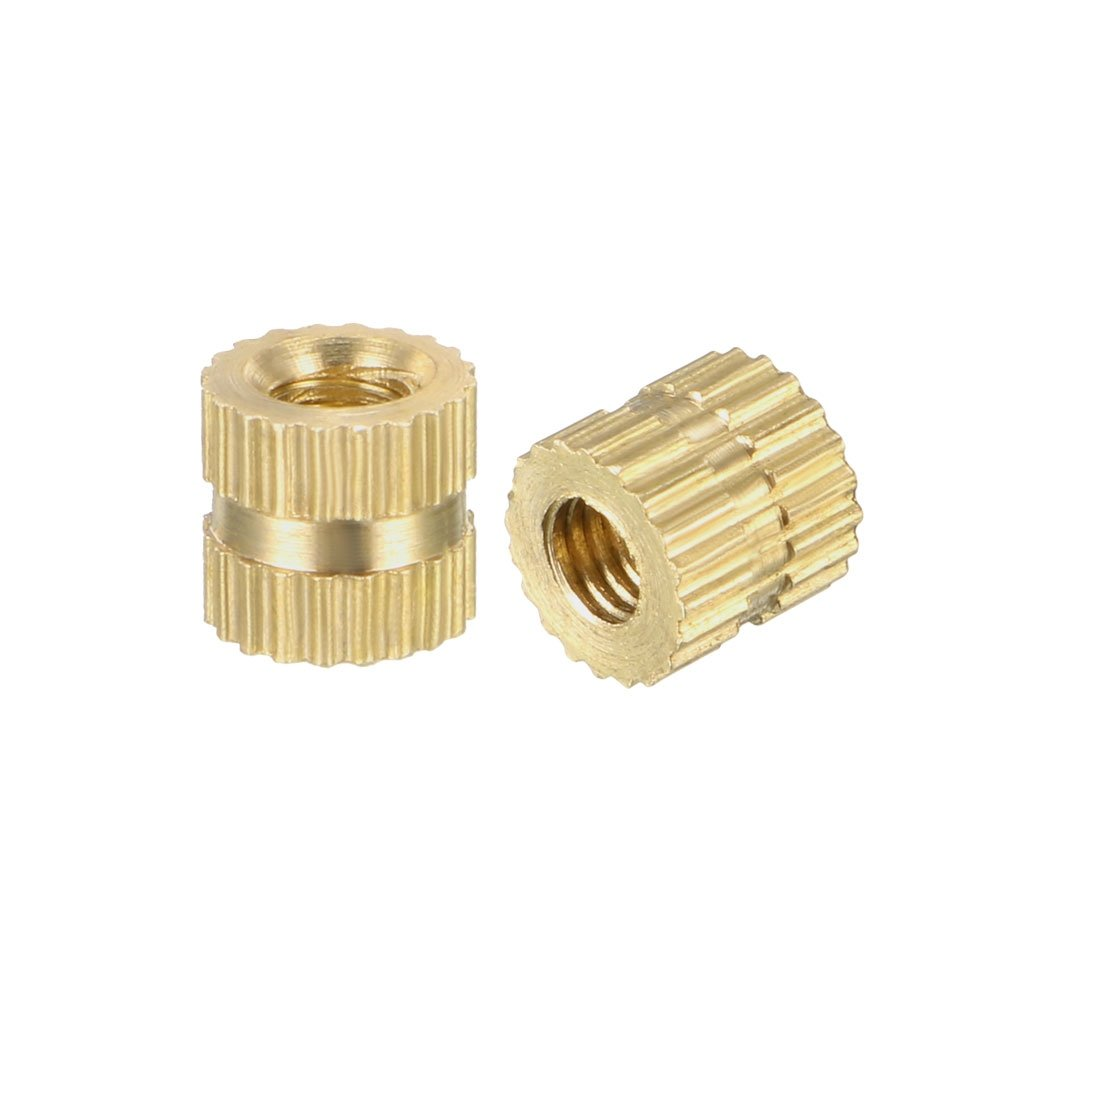 brass knurled threaded insert embedment nuts pcs knurl accent table free shipping orders over dorm room ideas target metal coffee tiffany nightstand lamps bassett end tables trunk